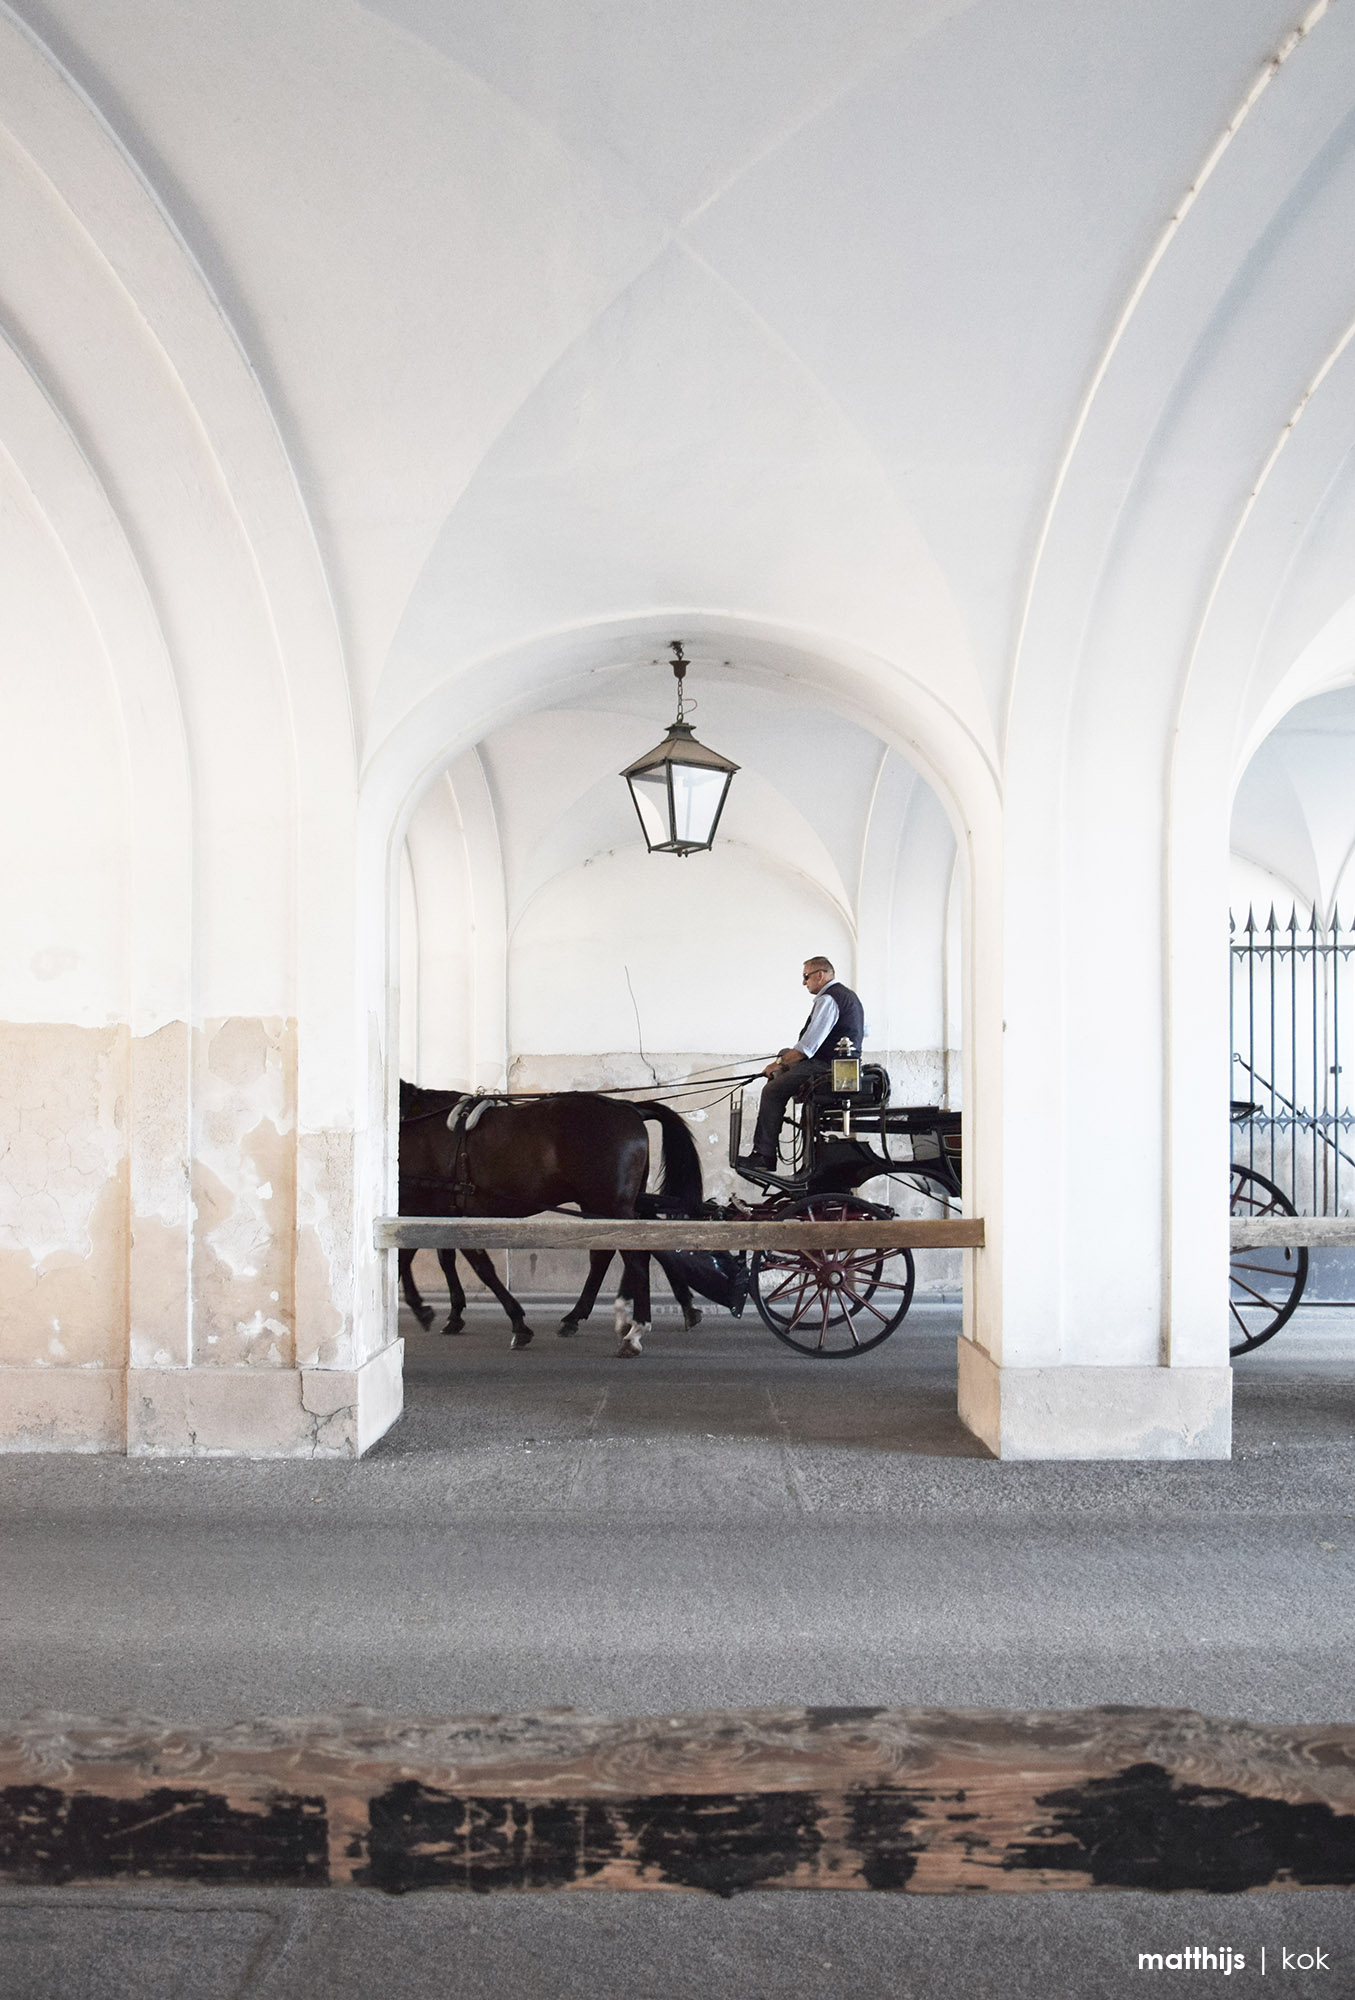 Horse Carriage in Spanische Hofreitschule, Vienna, Austria | Photo by Matthijs Kok